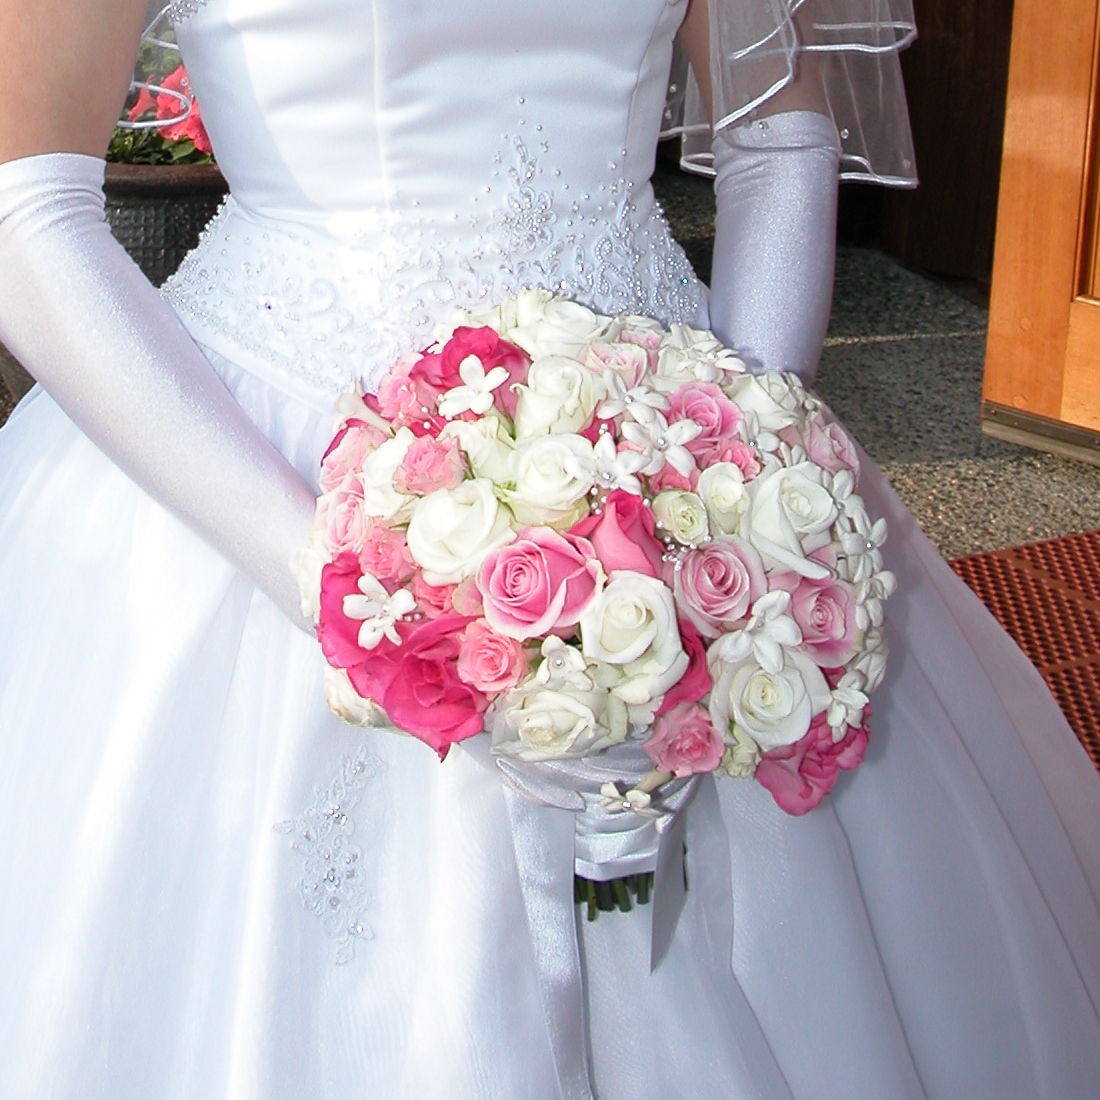 pink rose wedding flowers pics